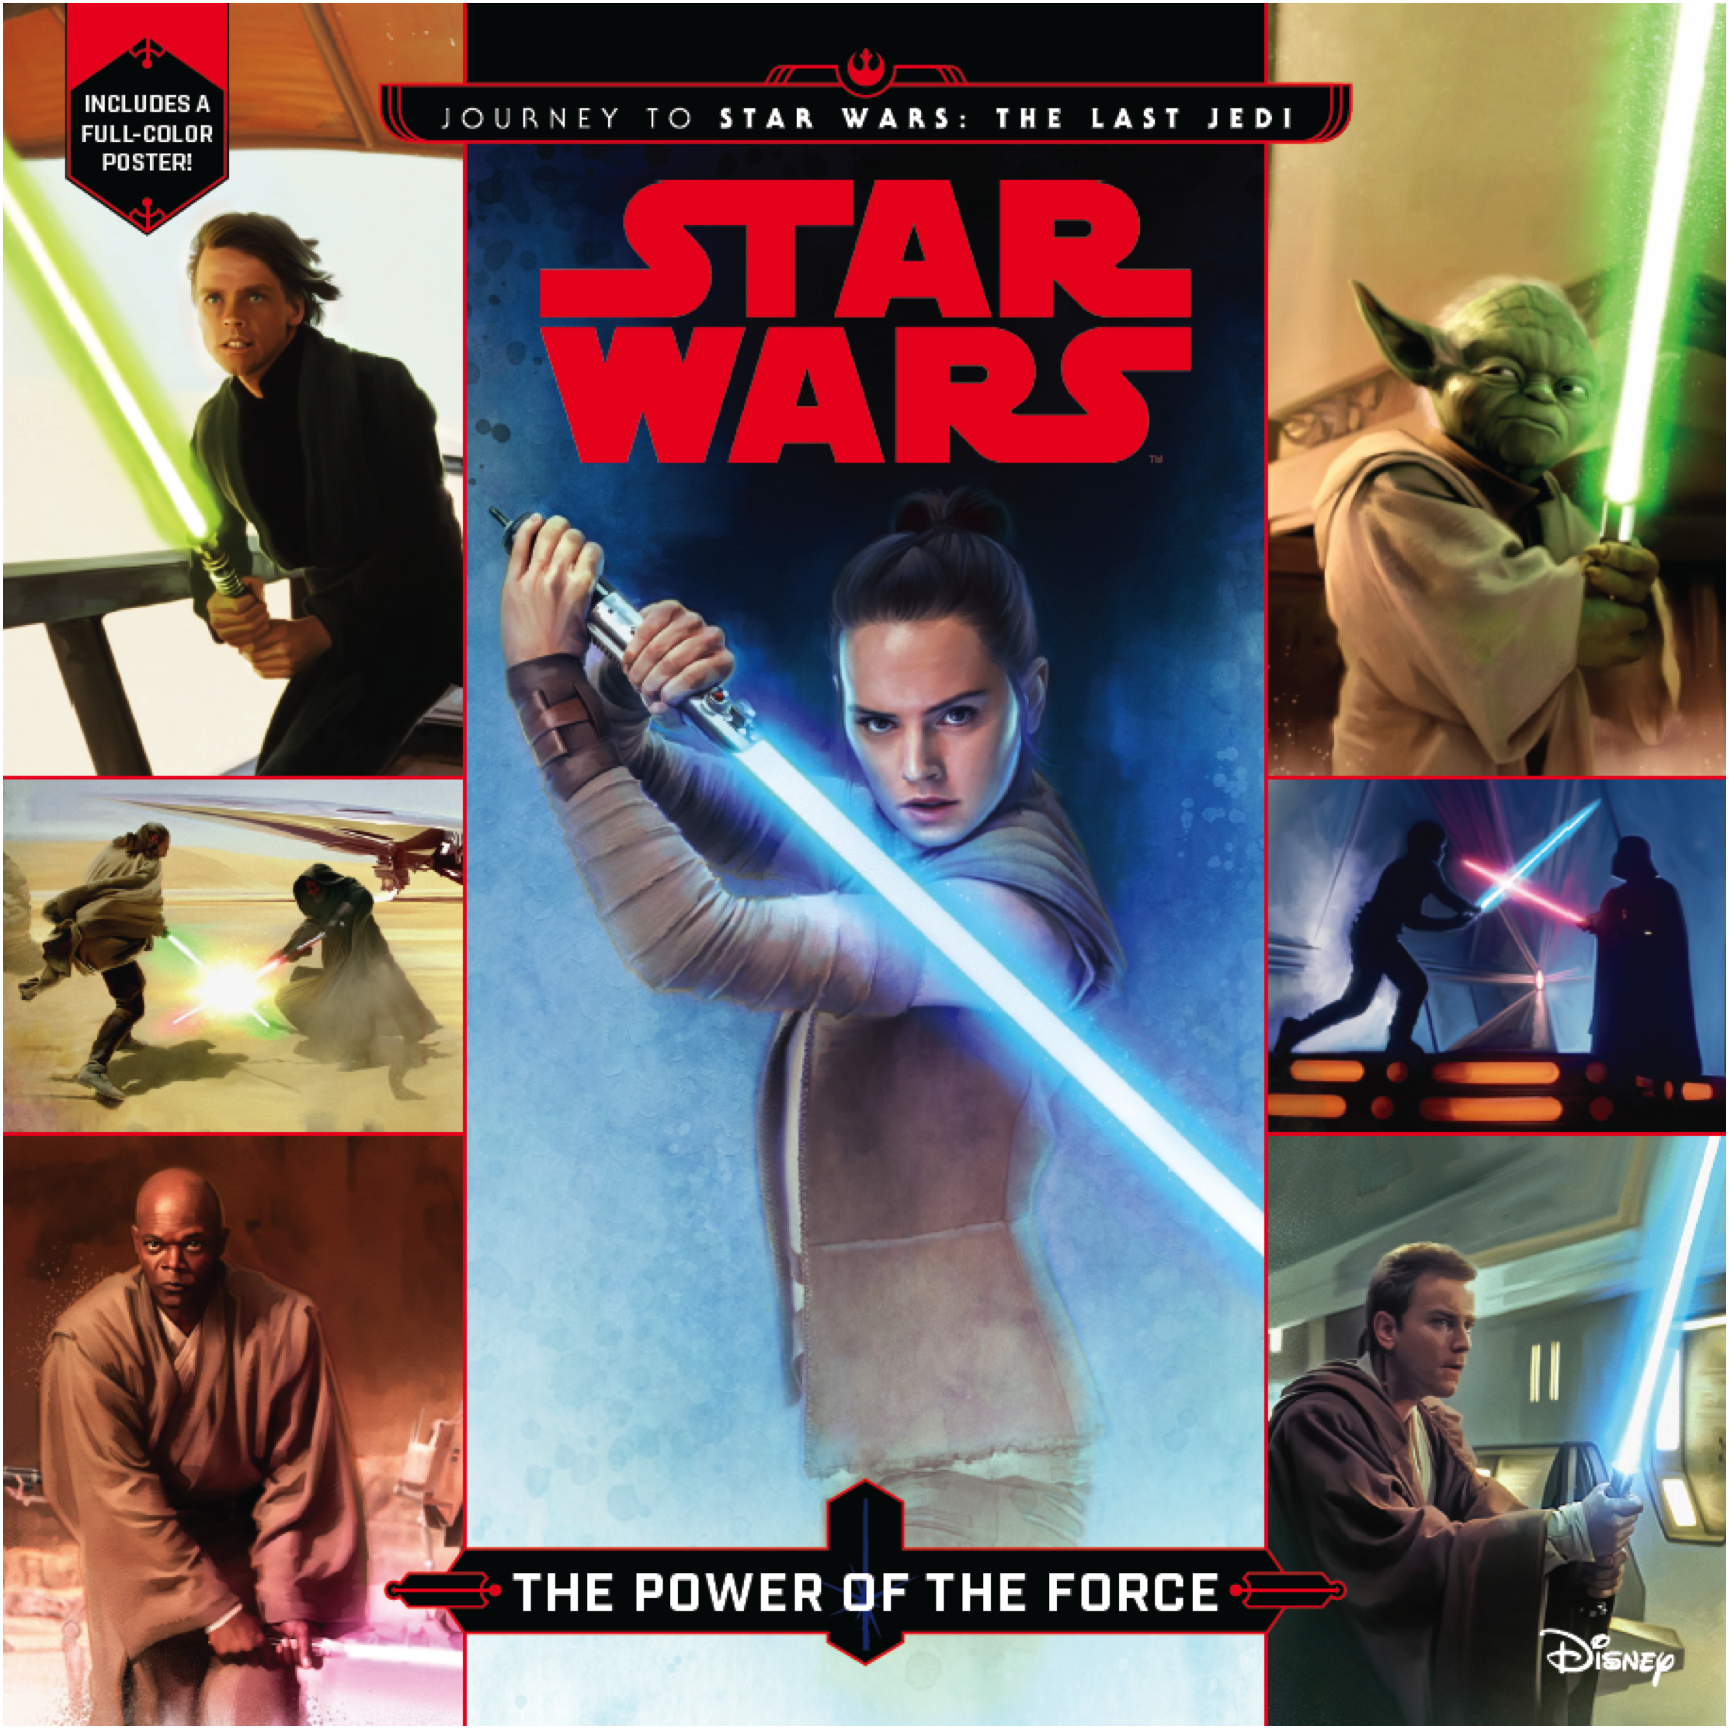 The Power of the Force, by Michael Siglain and illustrated by Brian Rood